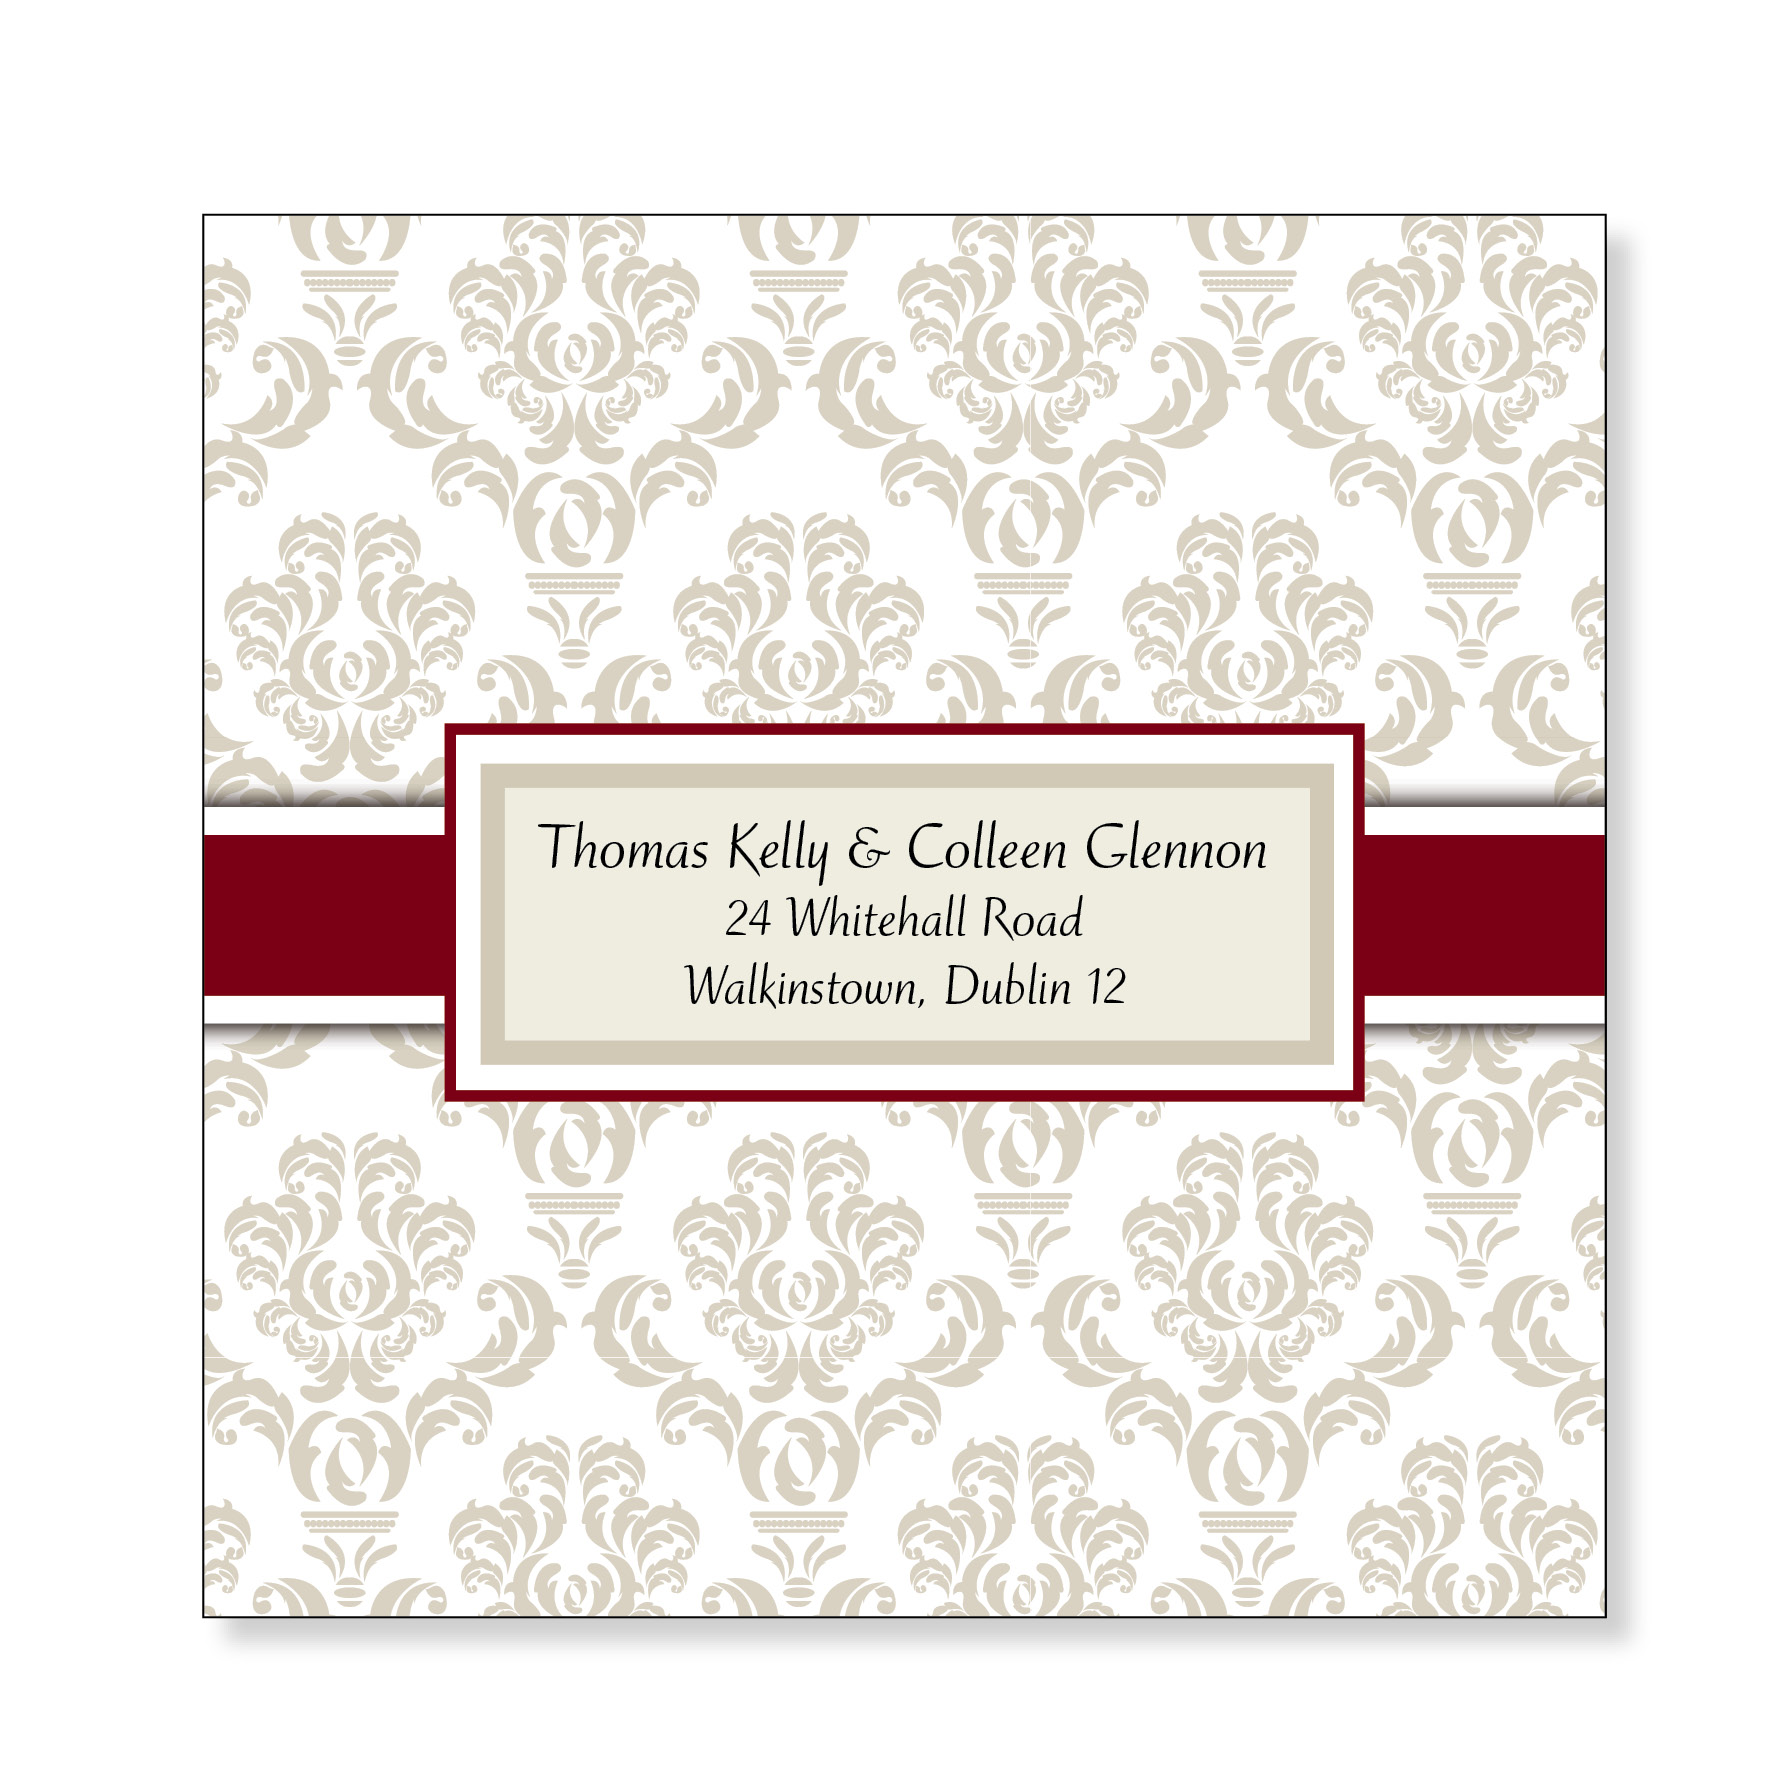 Wedding Reply Card - Classic